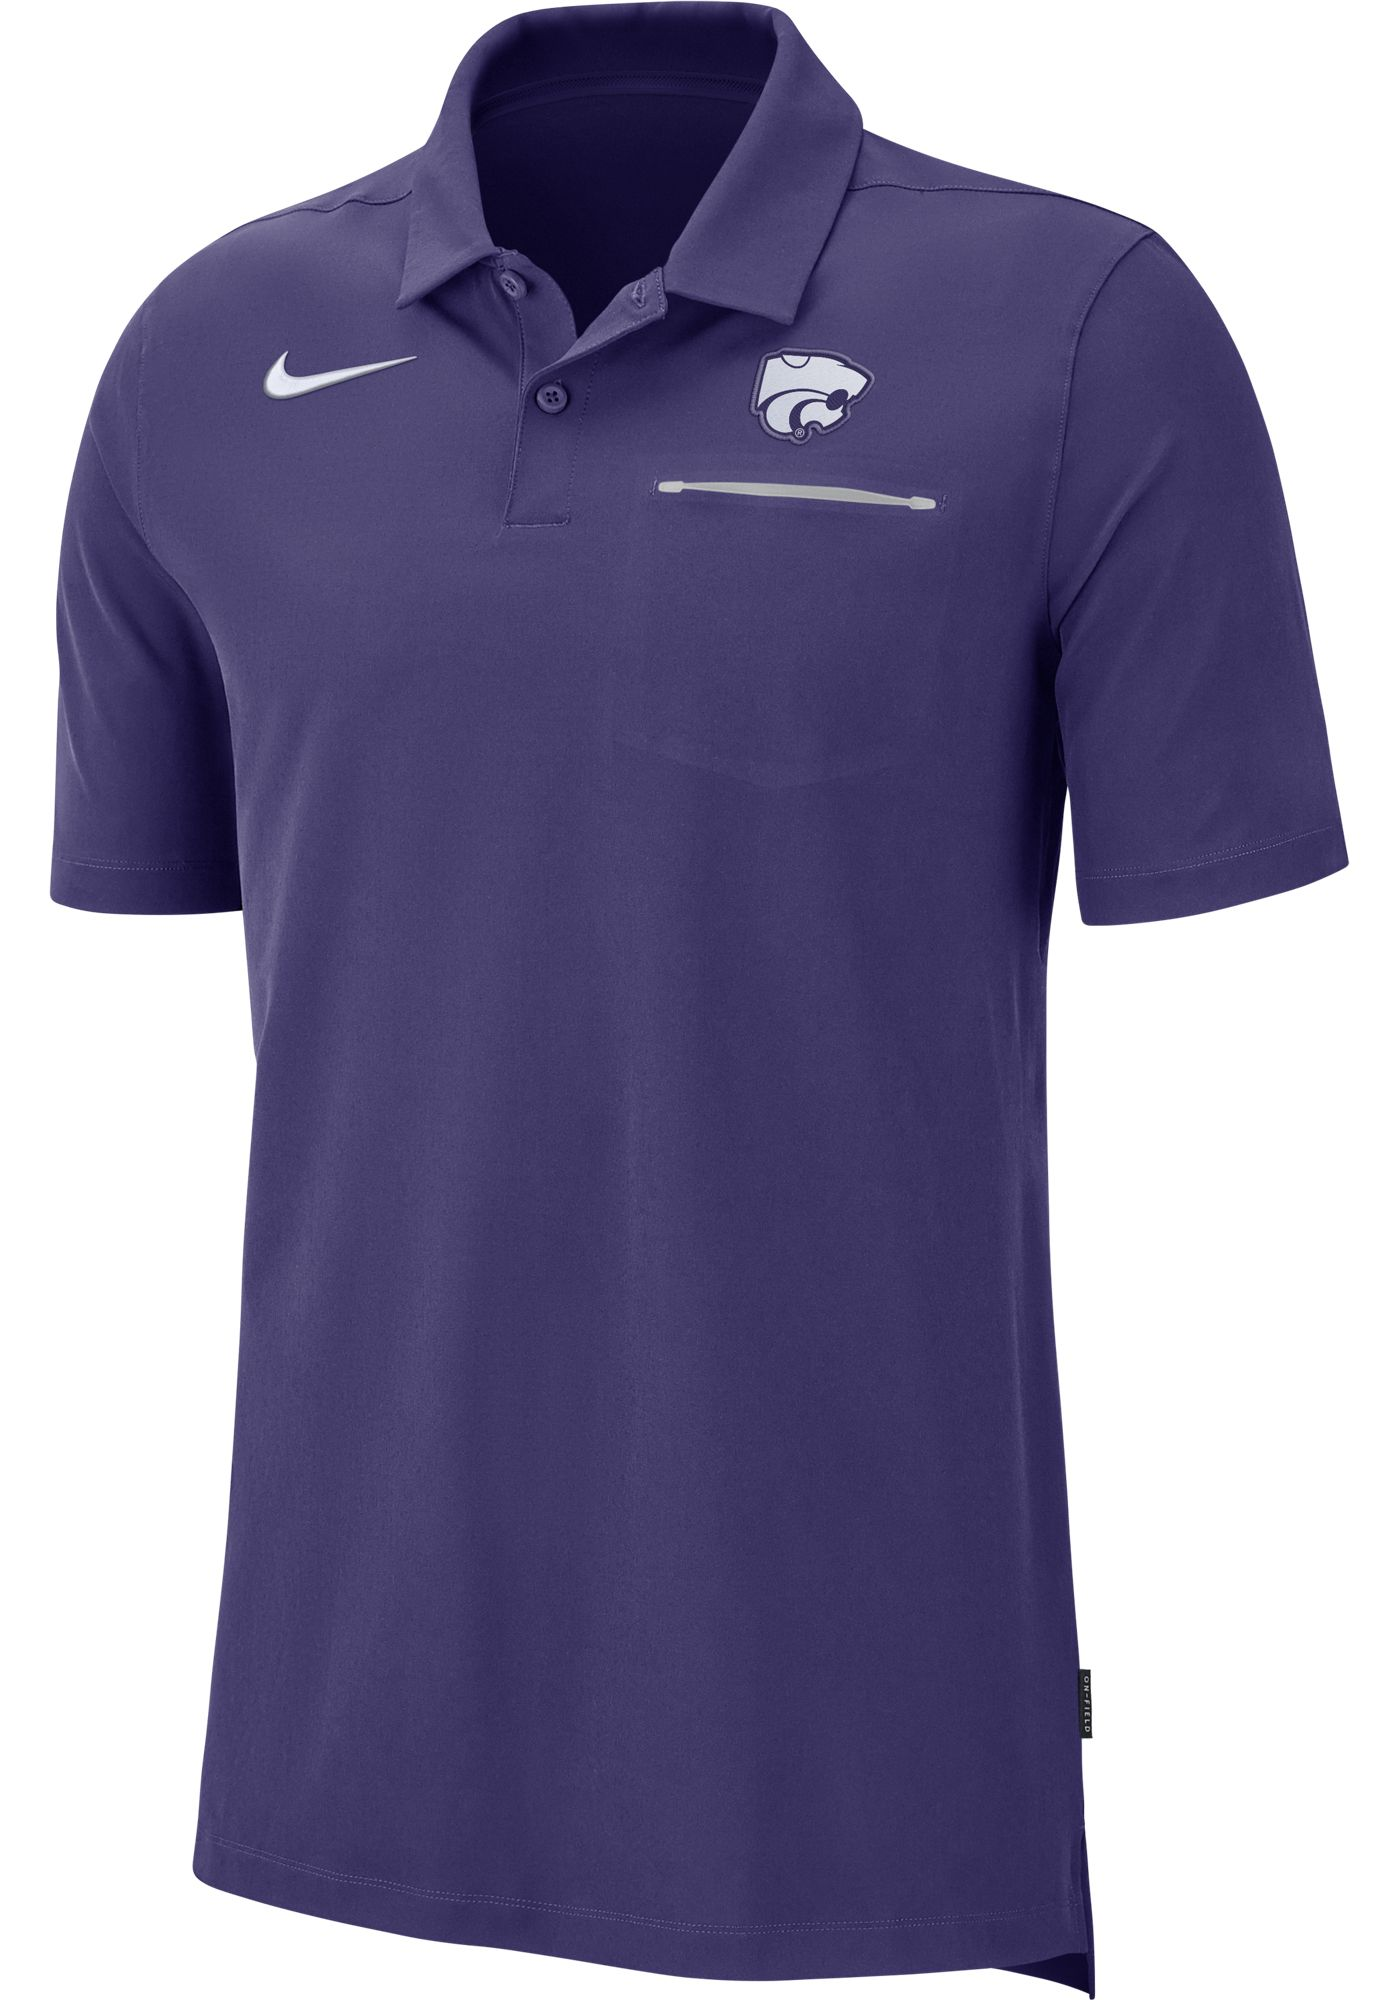 Nike Men's Kansas State Wildcats Purple Dri-FIT Elite Football Sideline Polo